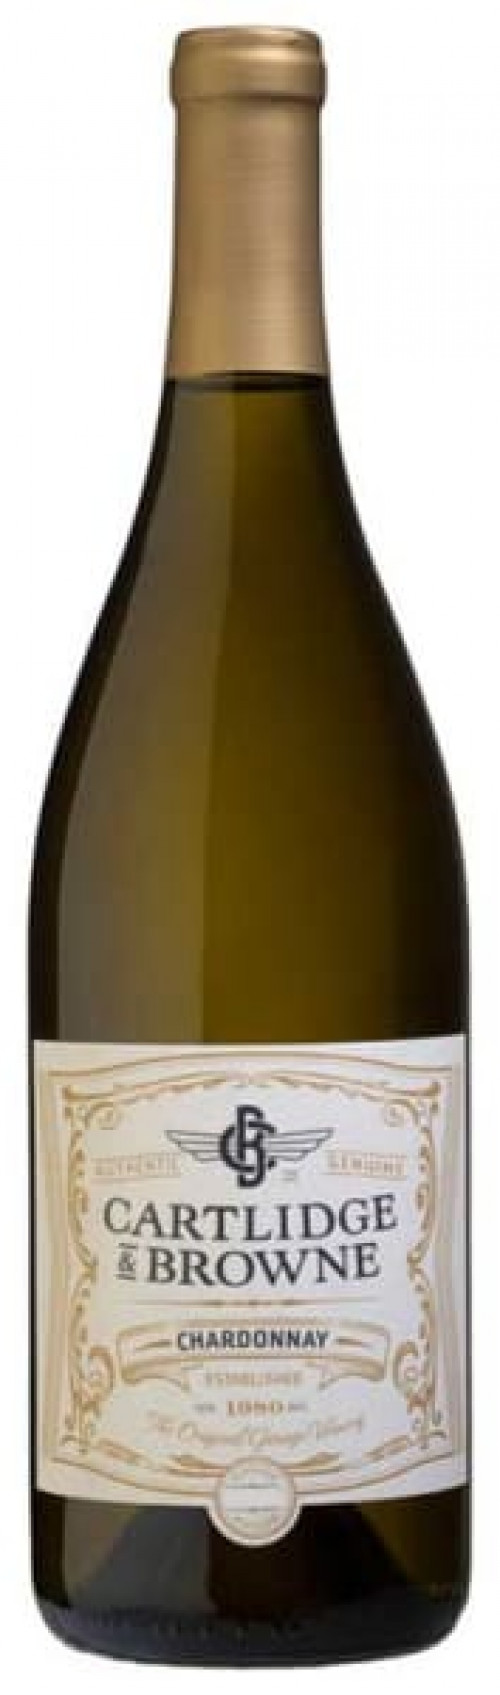 2017 Cartlidge & Browne Chardonnay 750ml